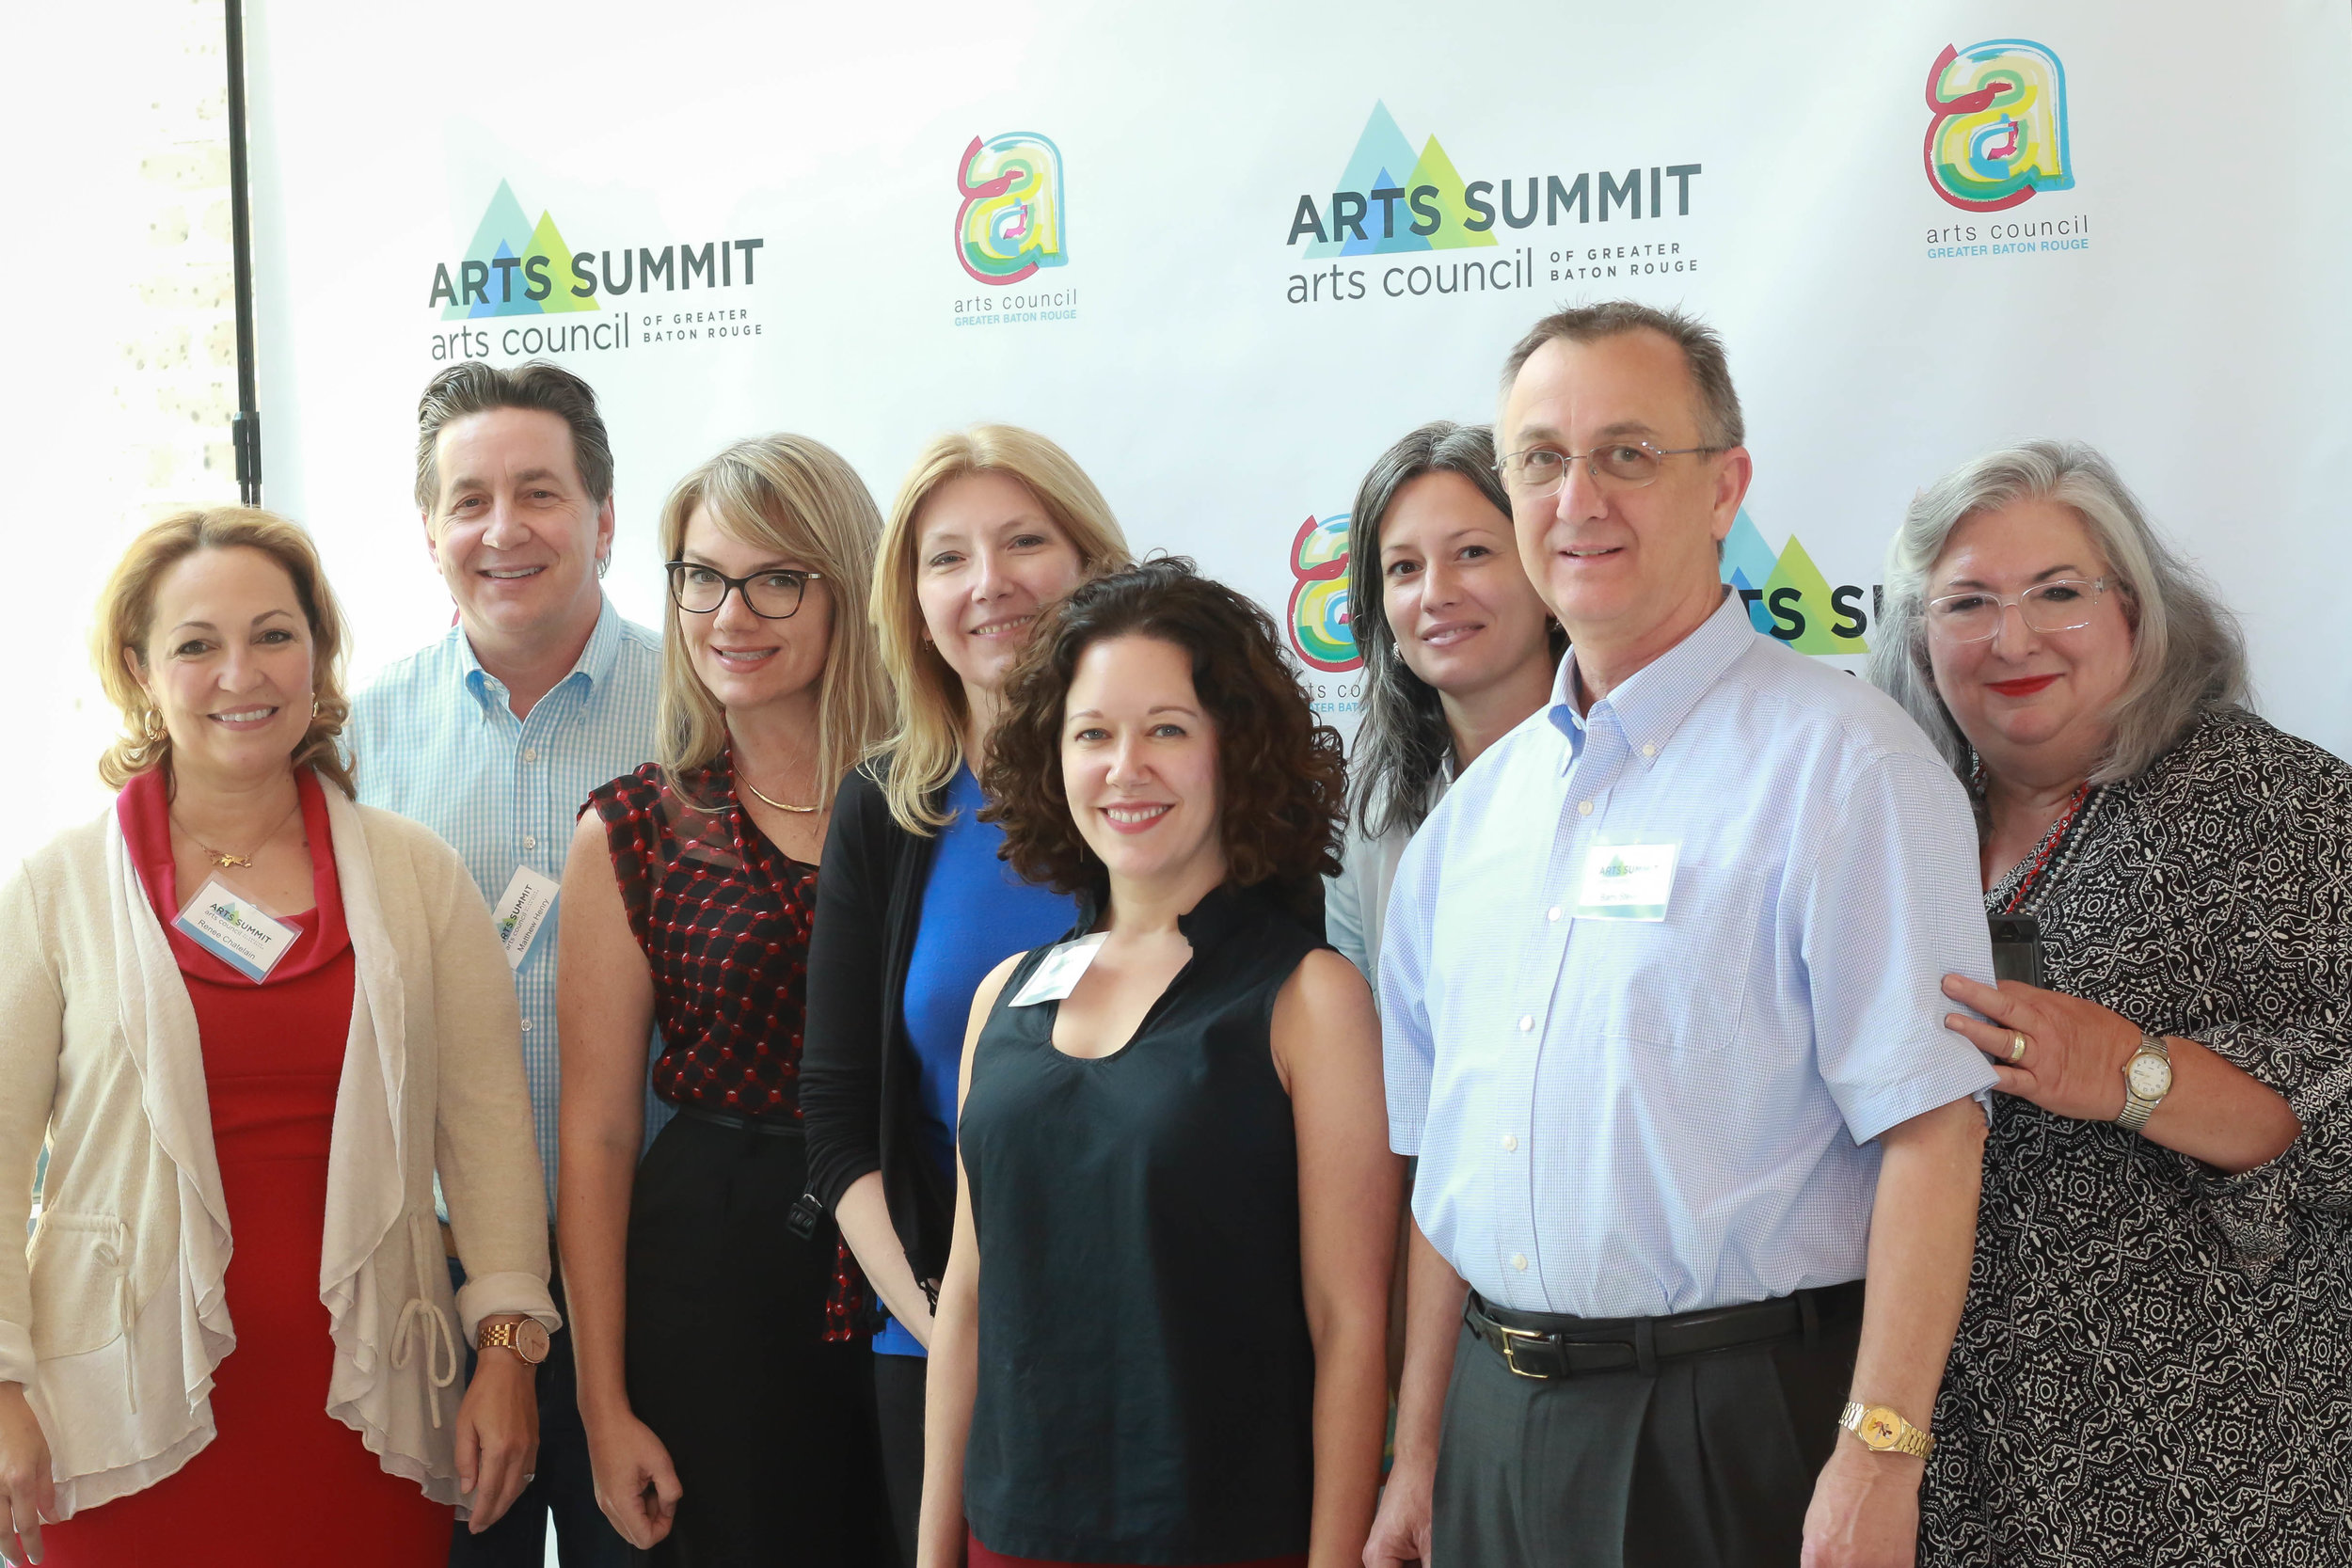 Thank you to all of the nine Regional Arts Councils for their help and support in making this 2018 Arts Summit a great success.